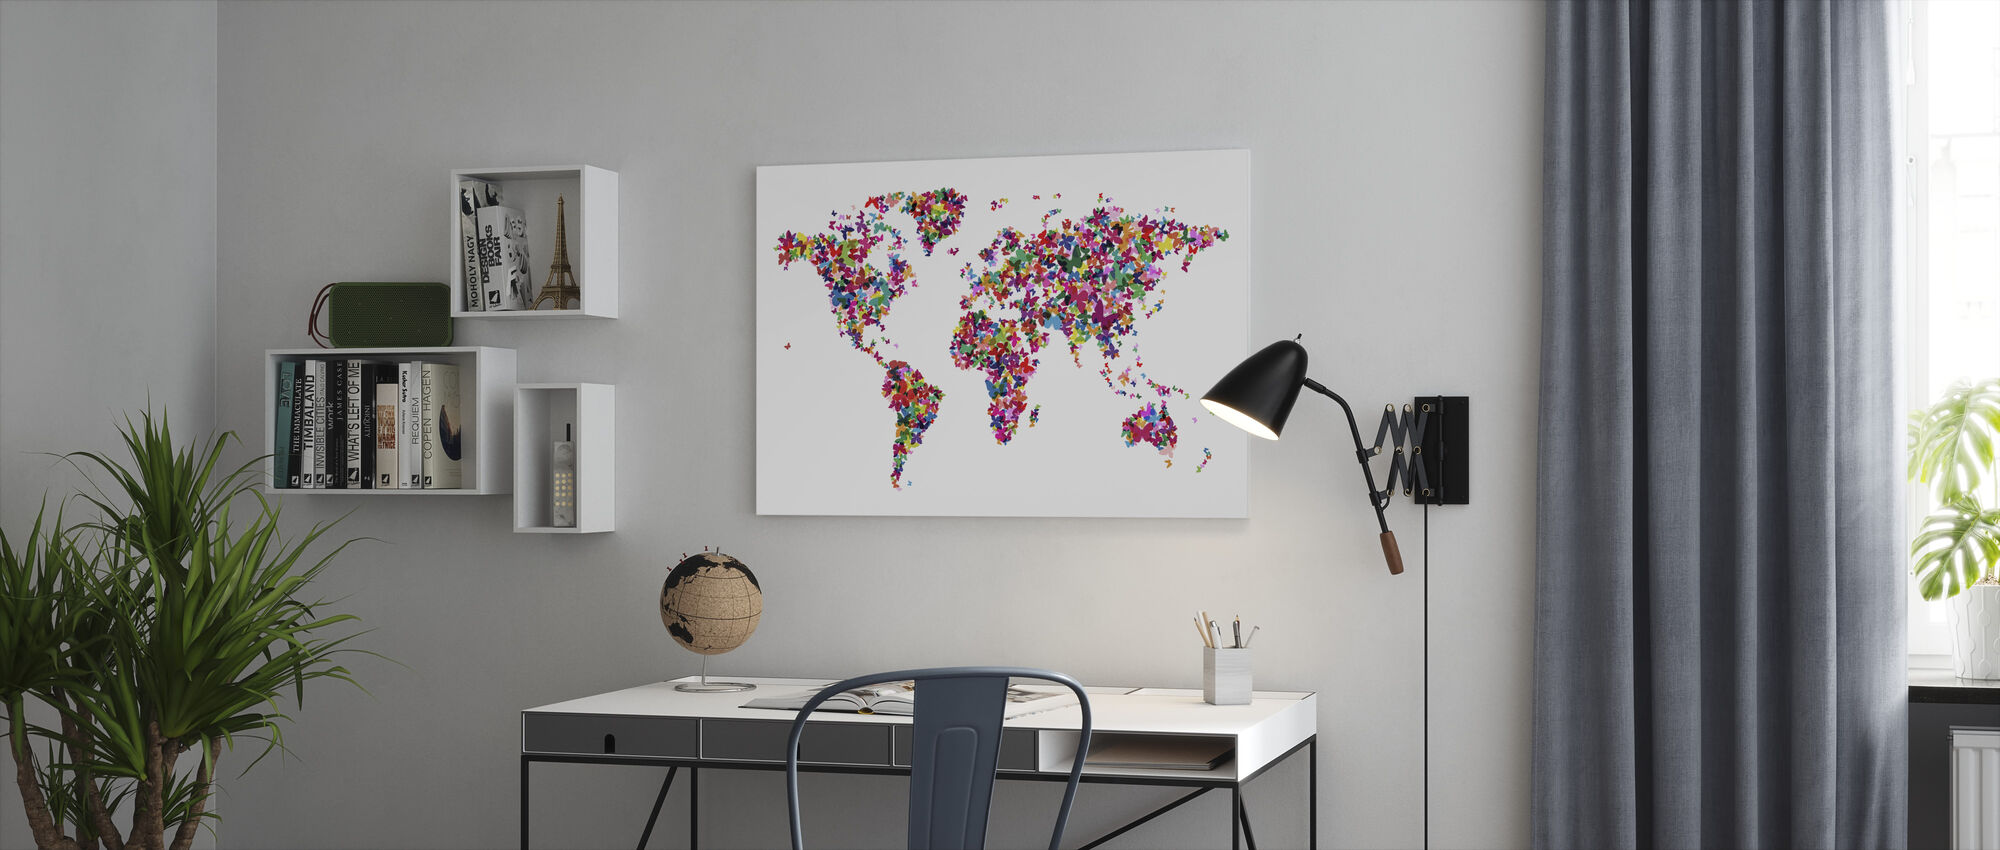 Fjärilar World Map Multicolor - Canvastavla - Kontor